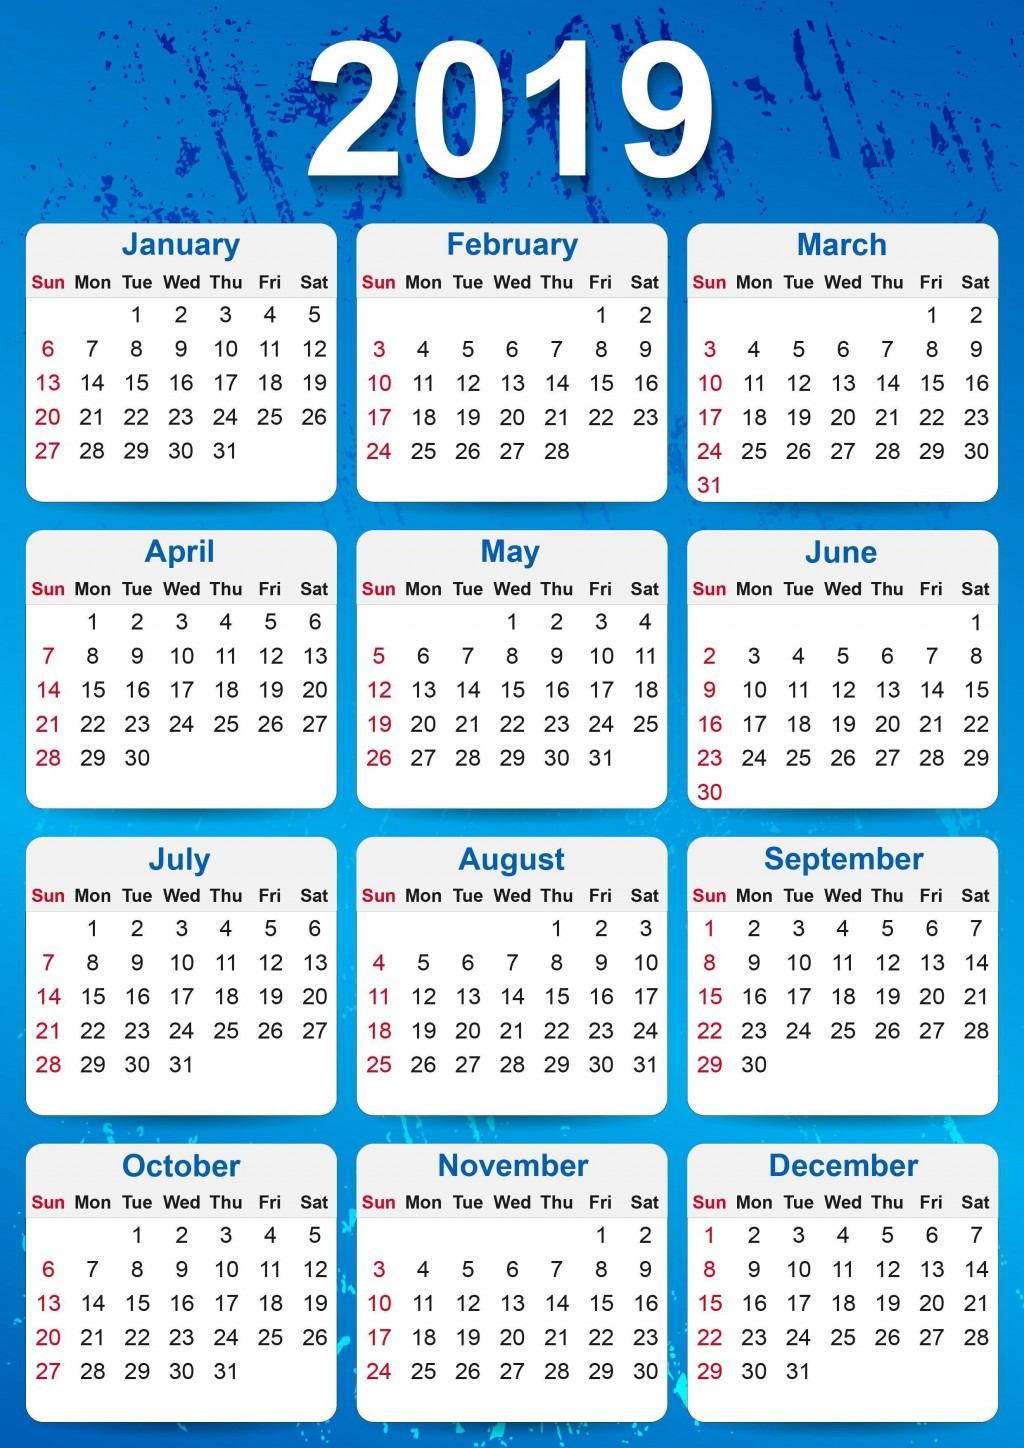 000 Staggering Calendar Template Free Download Concept  2020 Powerpoint Table Design 2019 MalaysiaLarge